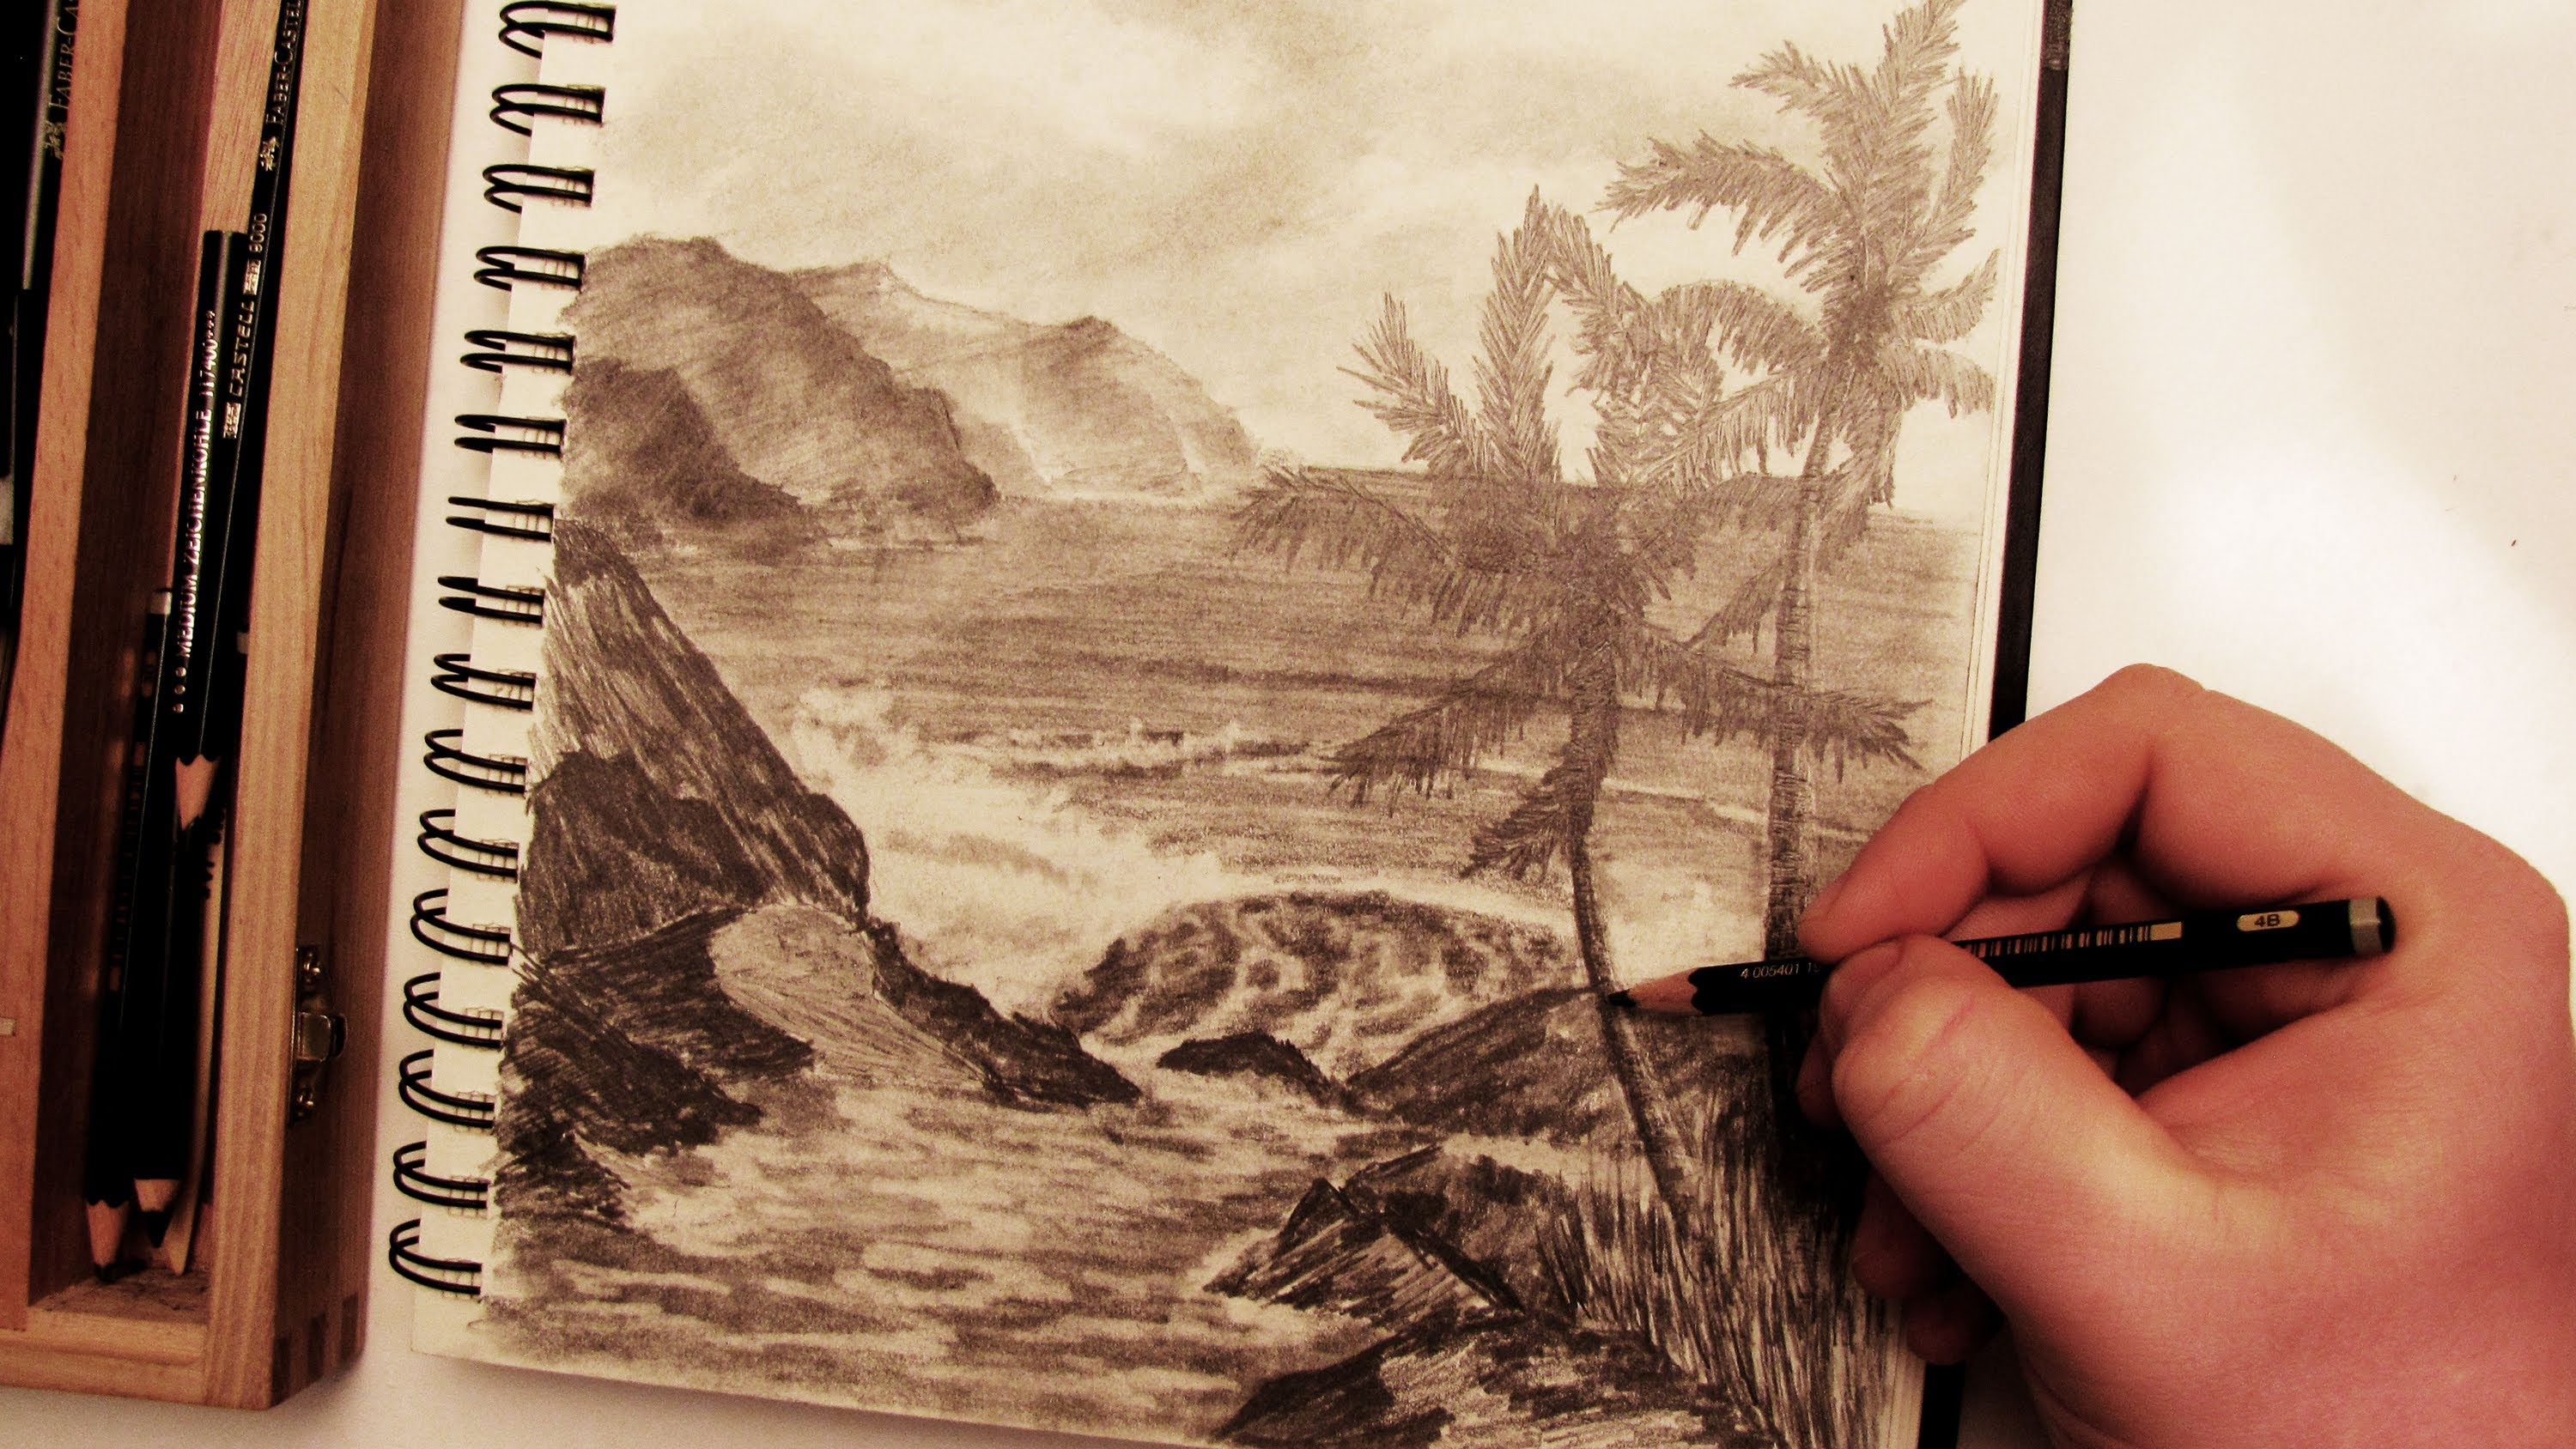 3000x1688 How To Draw A Realistic Palm Tree Beach Landscape In Pencil